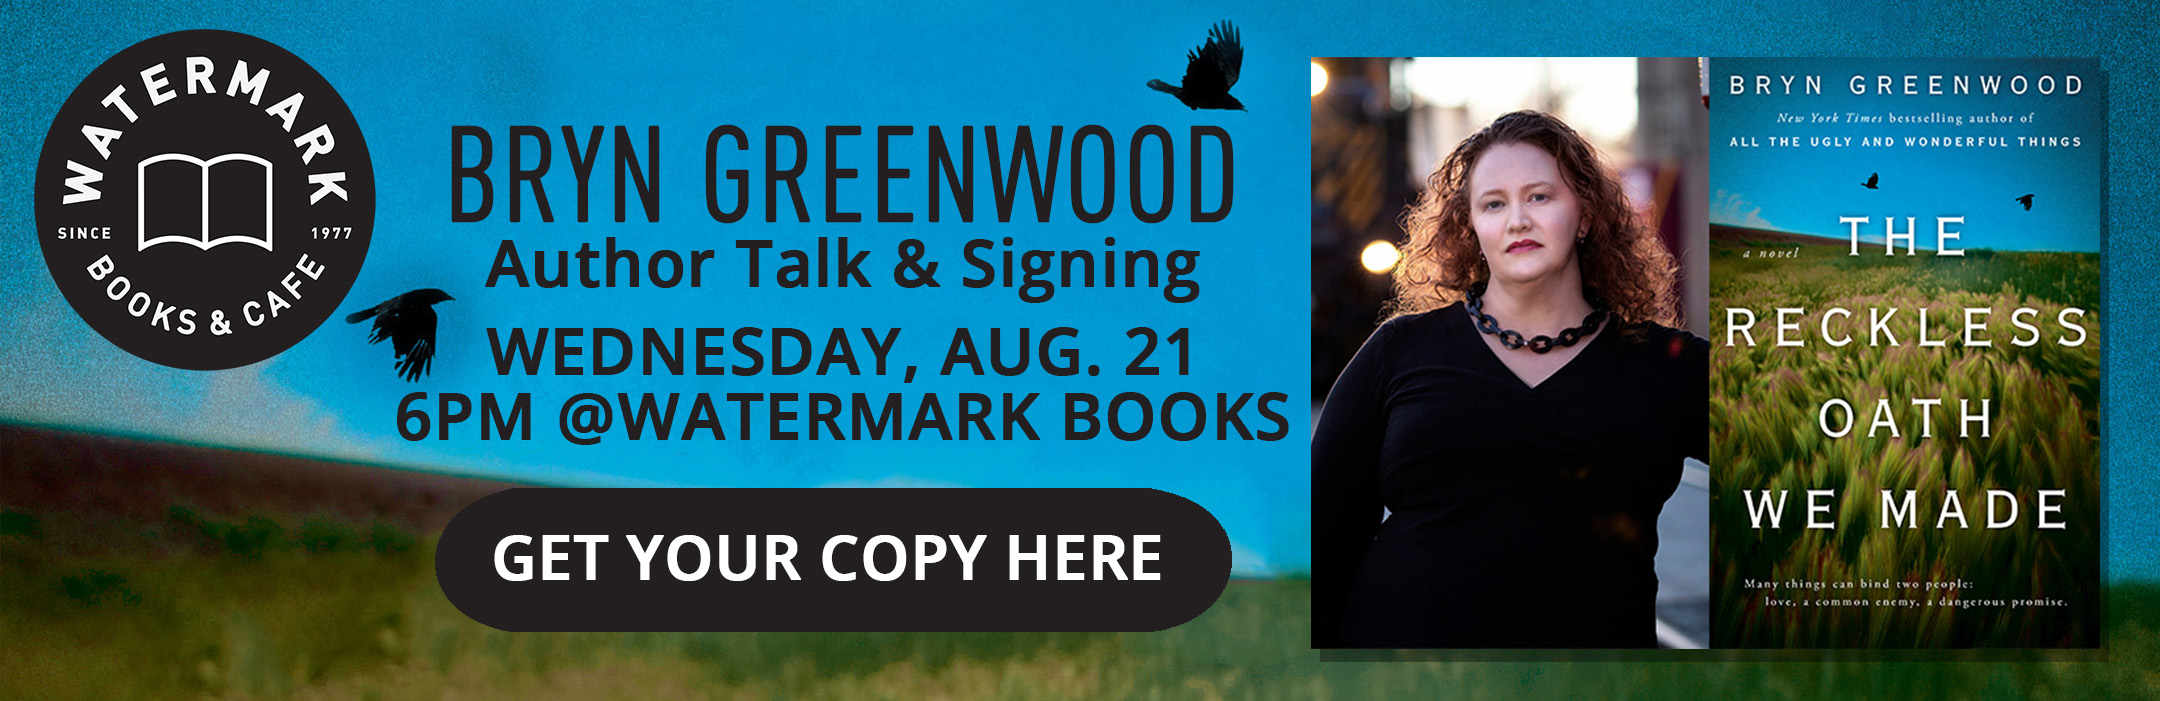 Bryn Greenwood Author Signing at Watermark Books